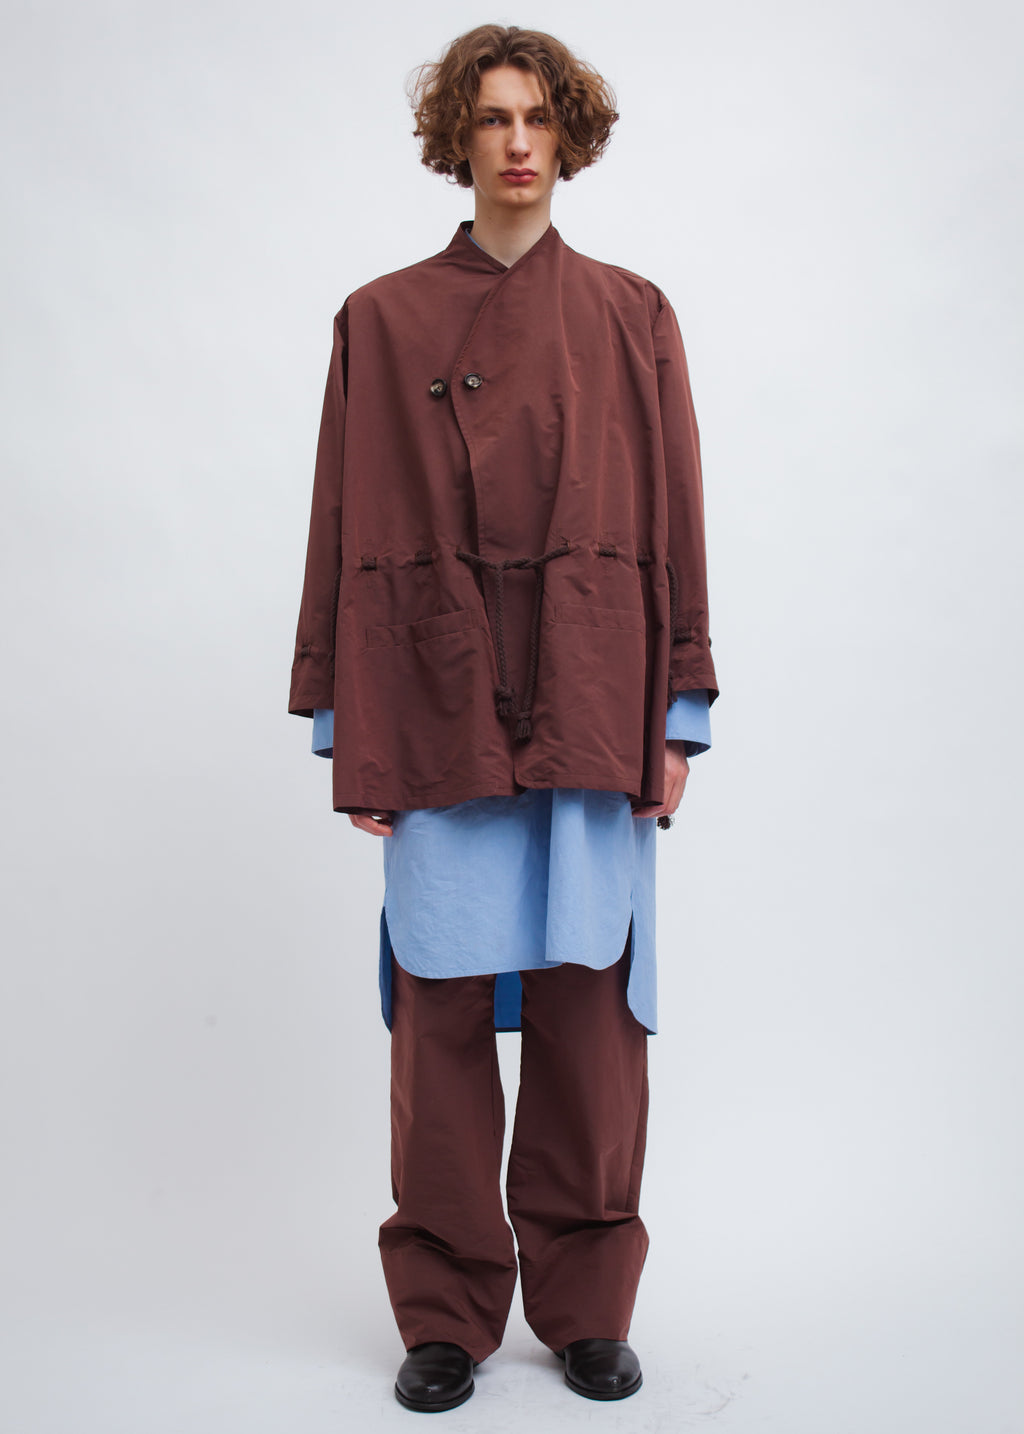 Omar Afridi Wrap Over Shirt (Tafta Brown)